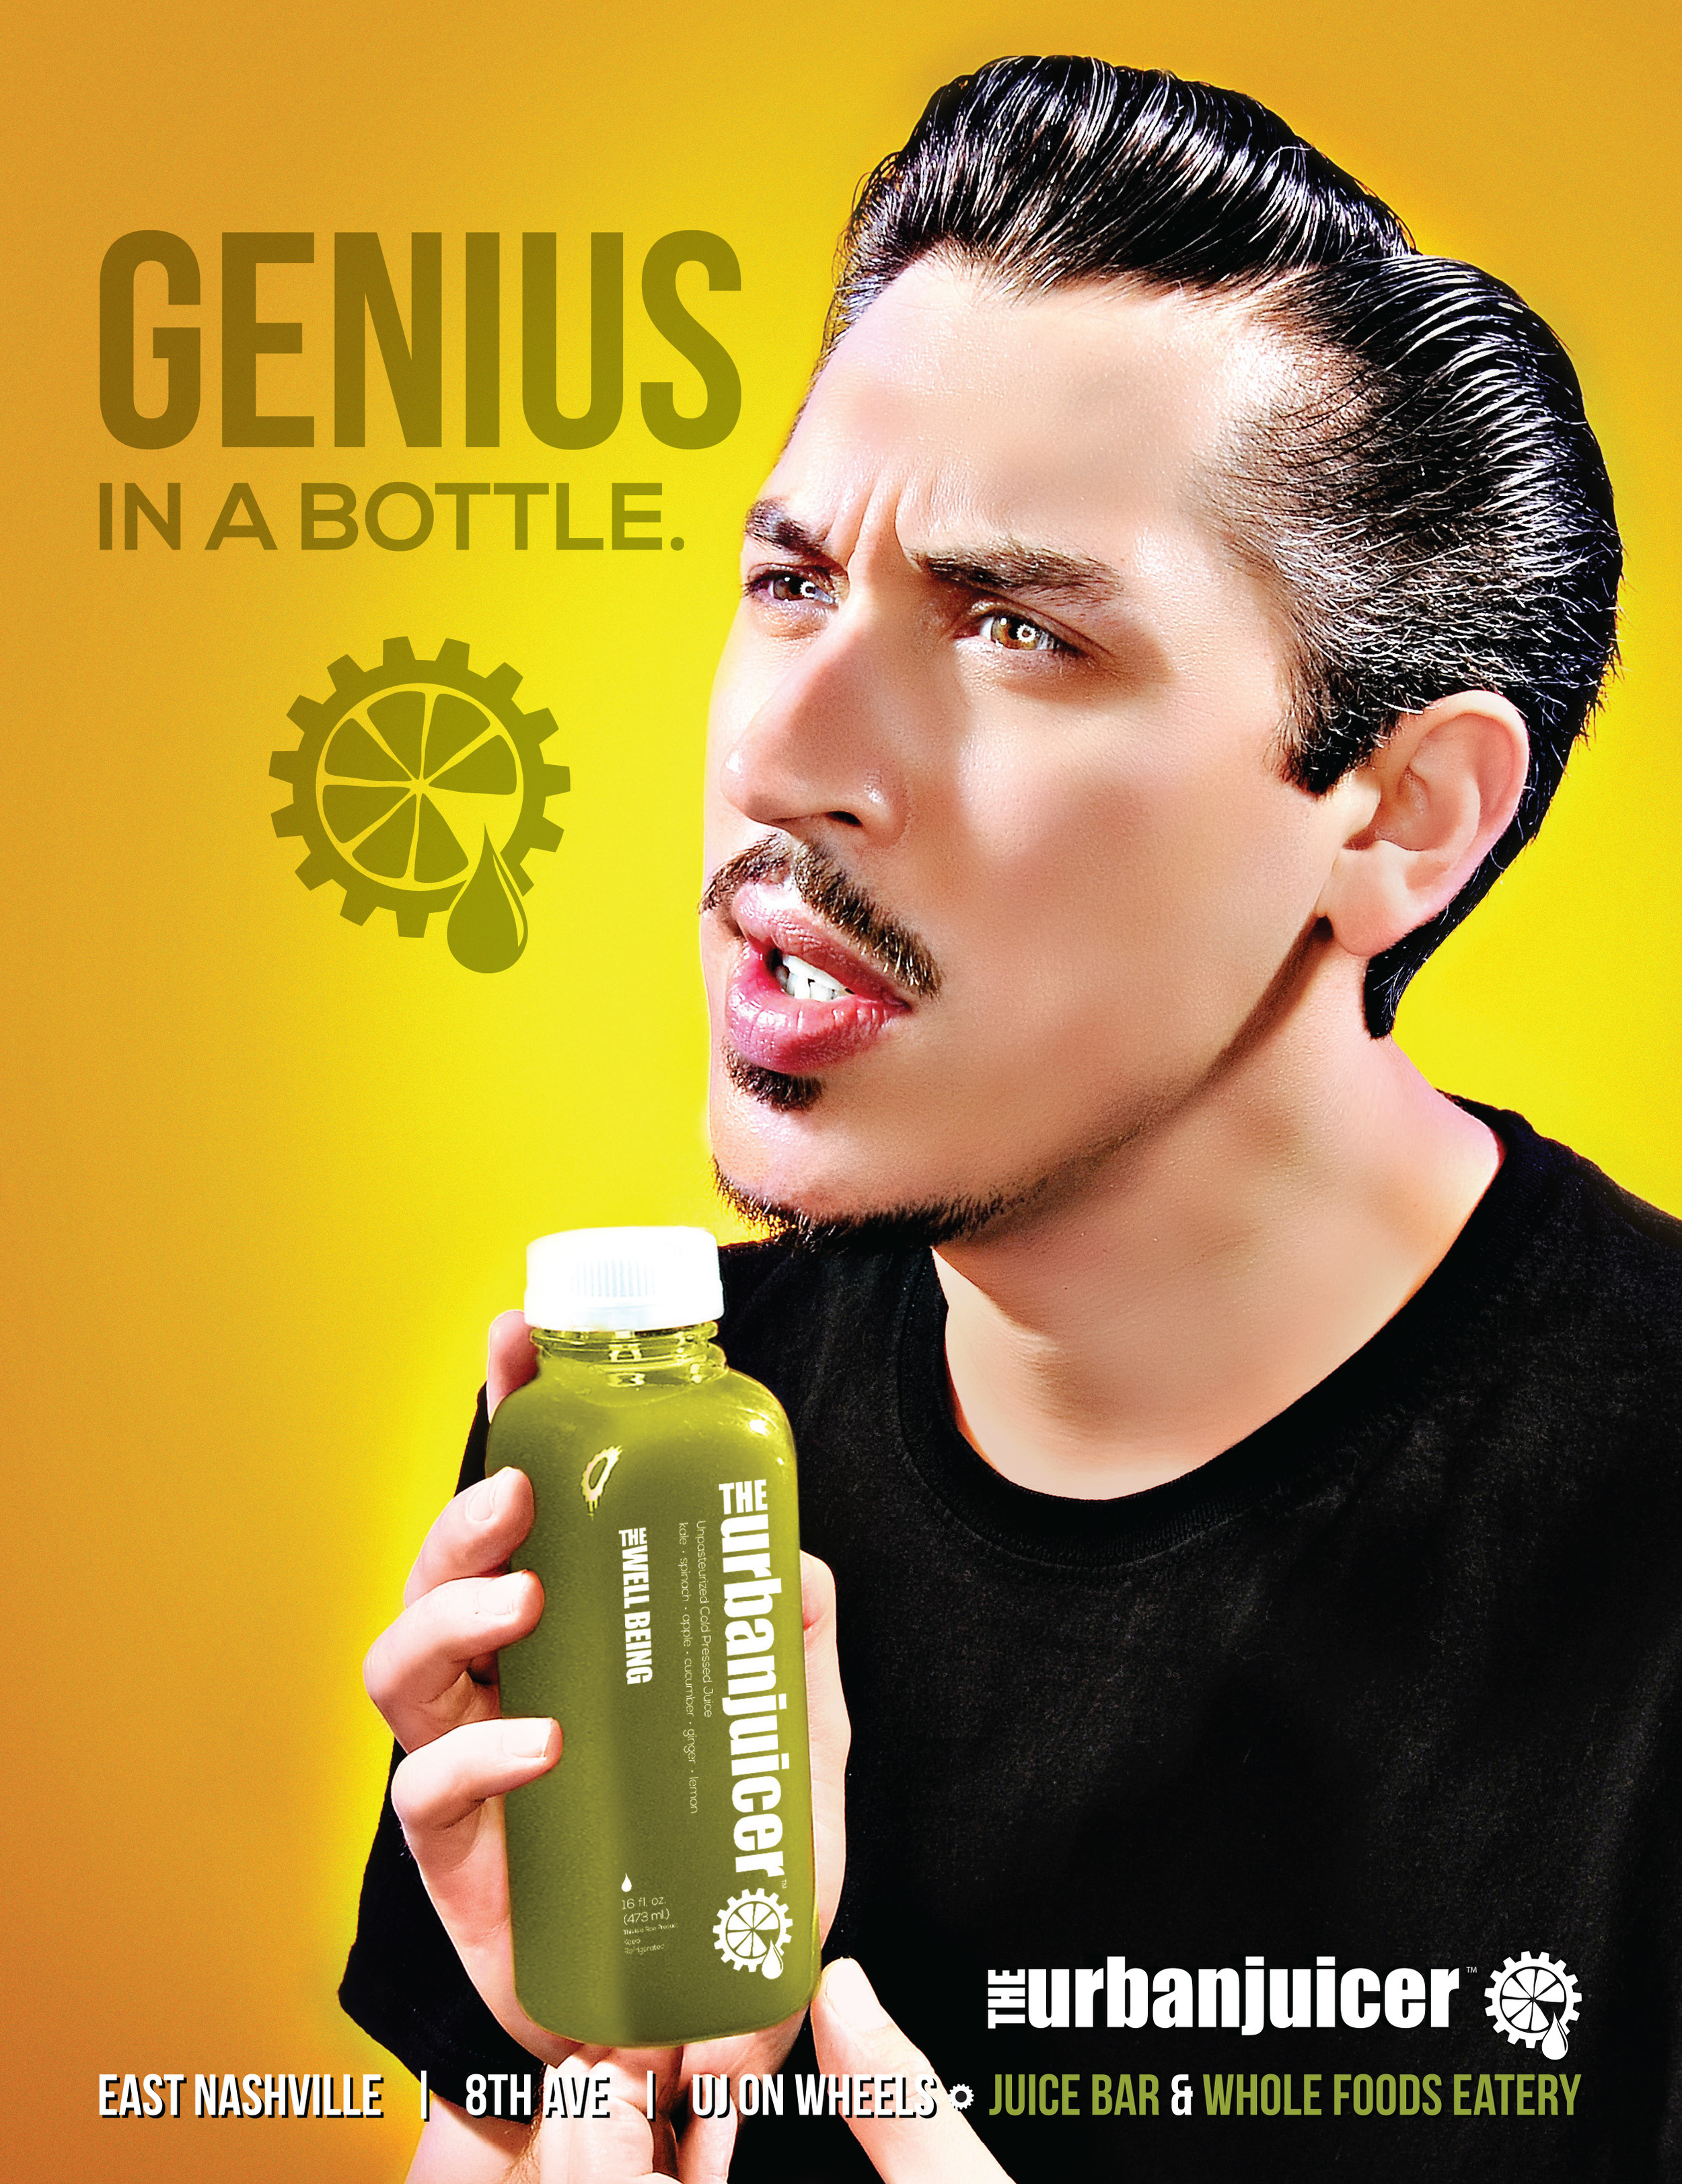 the-urban-juicer-genius-in-a-bottle